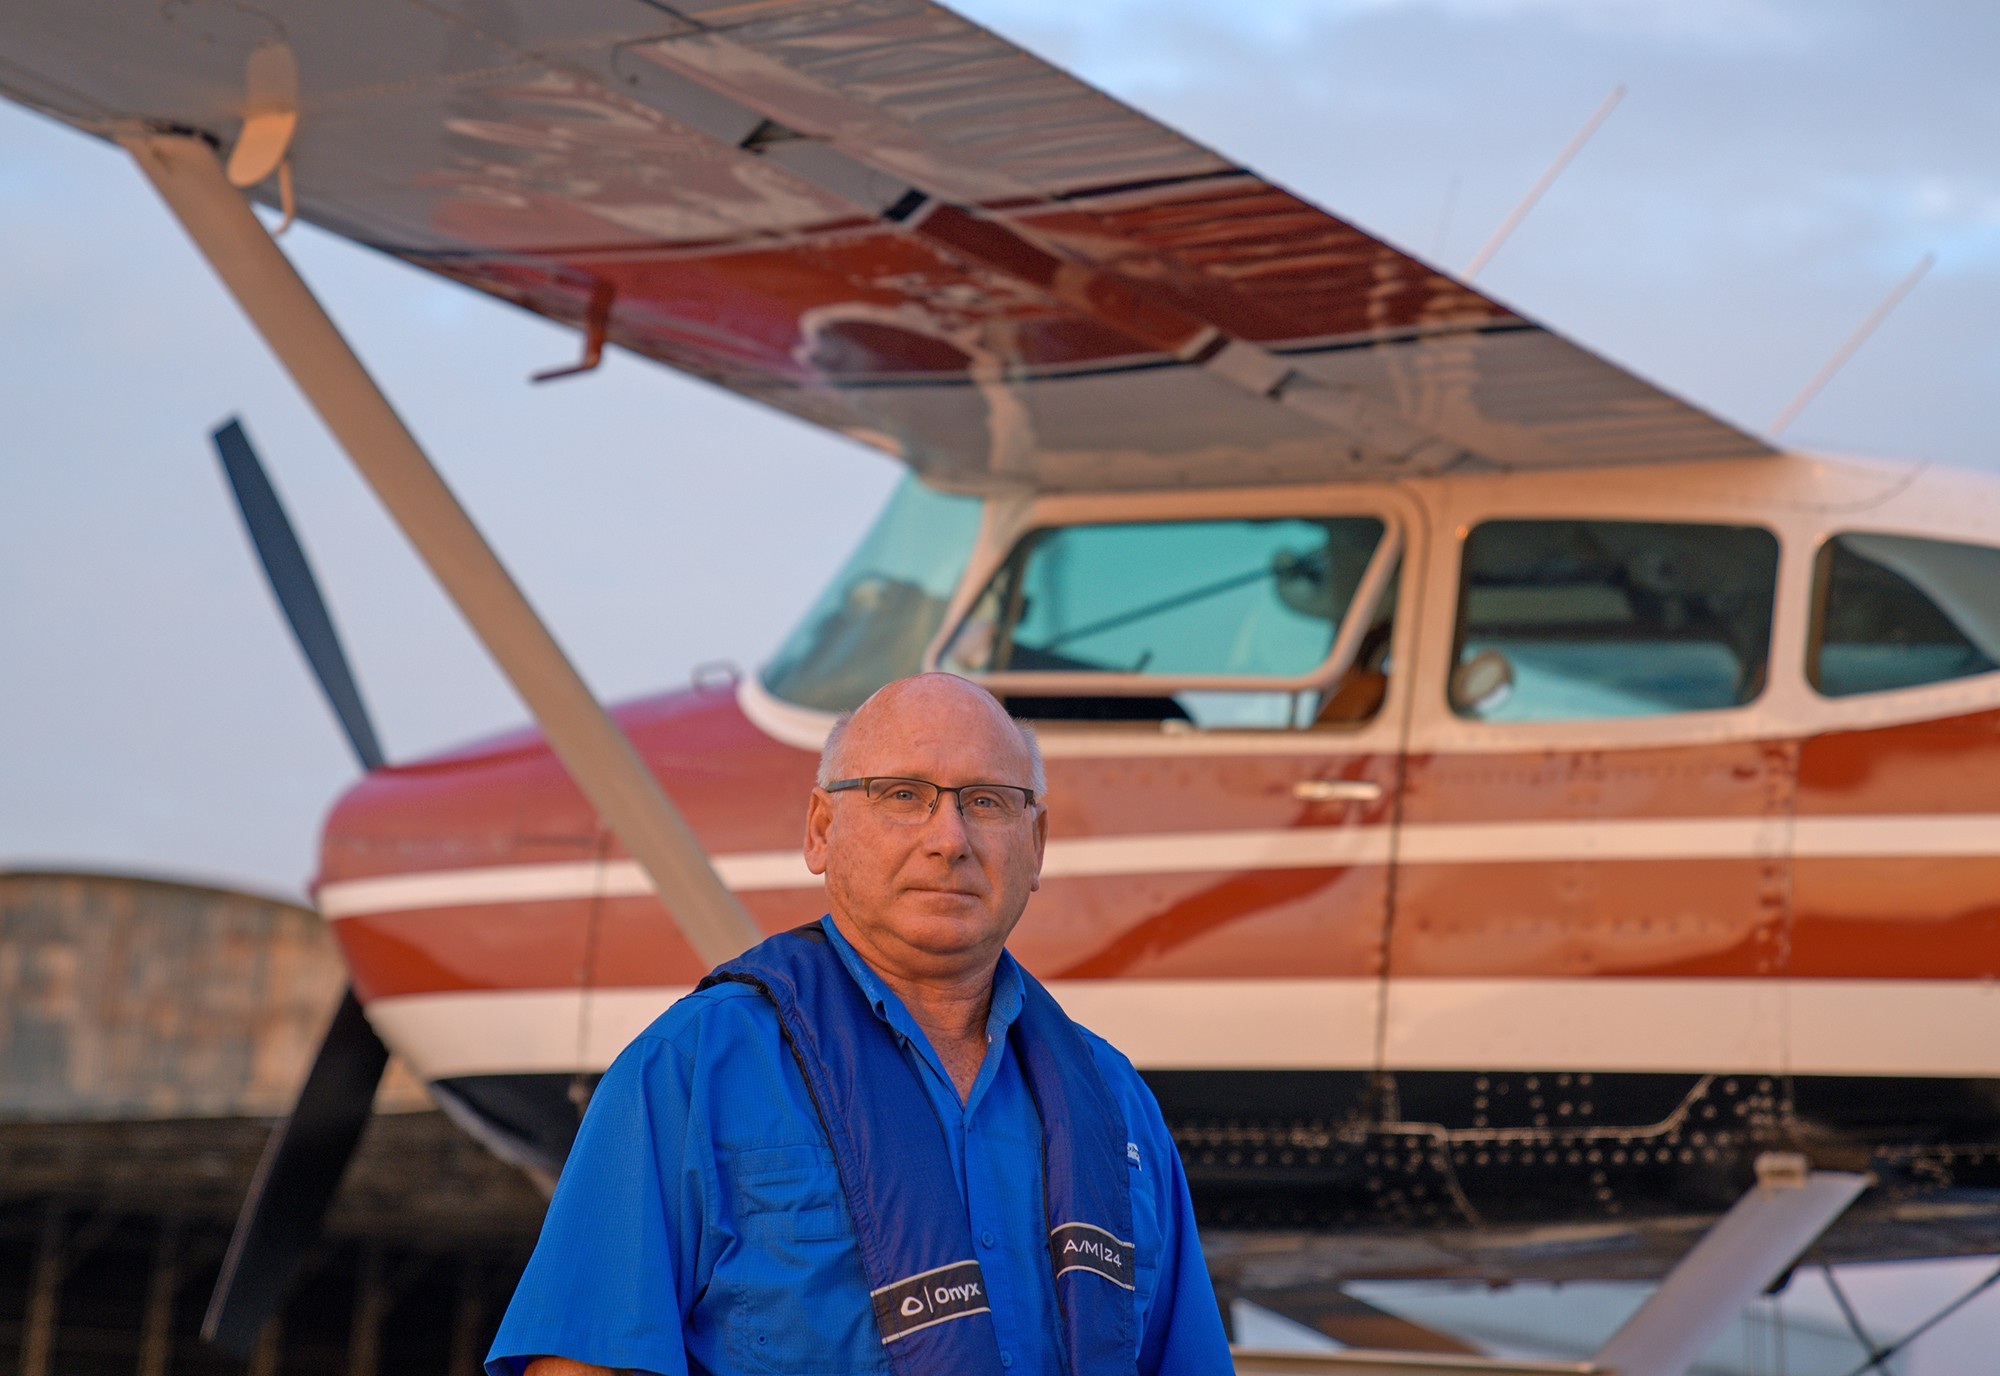 Man in foreground with small plane in background